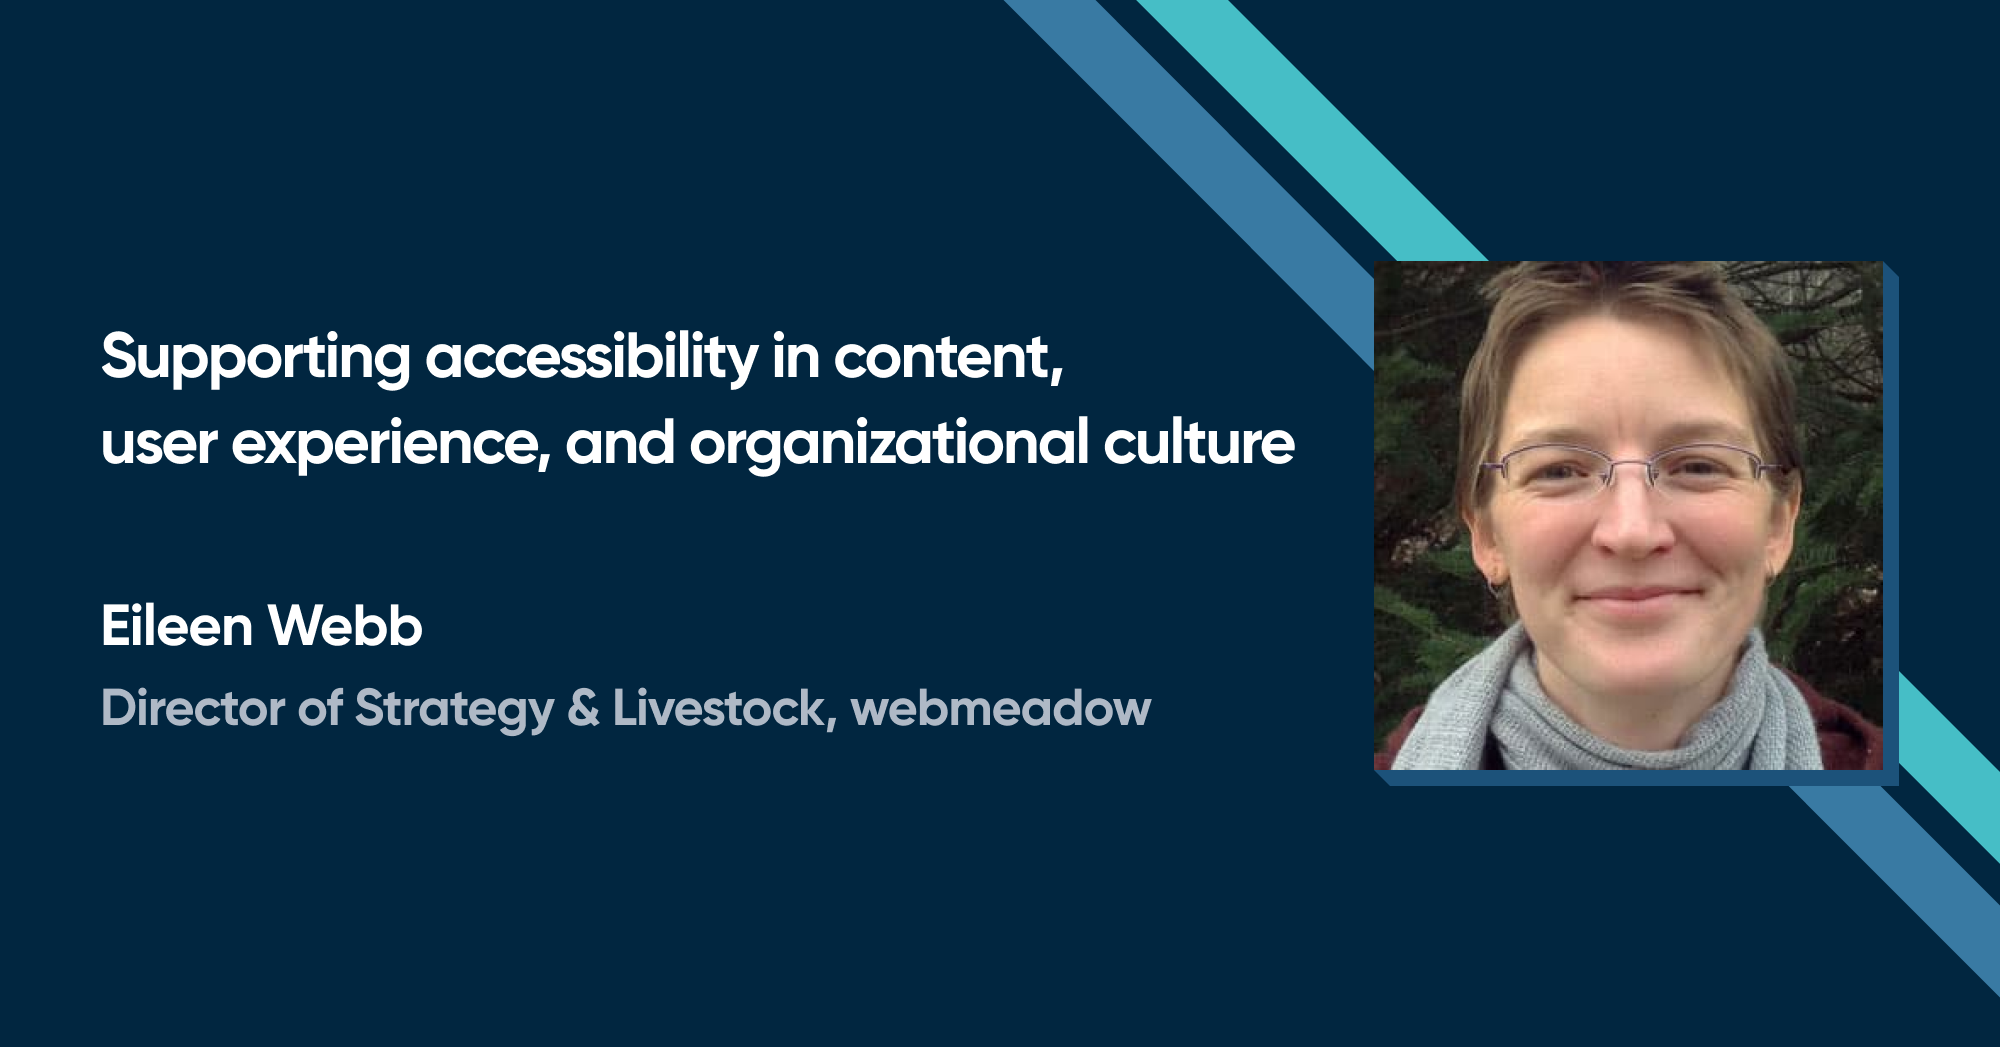 Eileen Webb - Supporting accessibility in content, user experience, and organizational culture